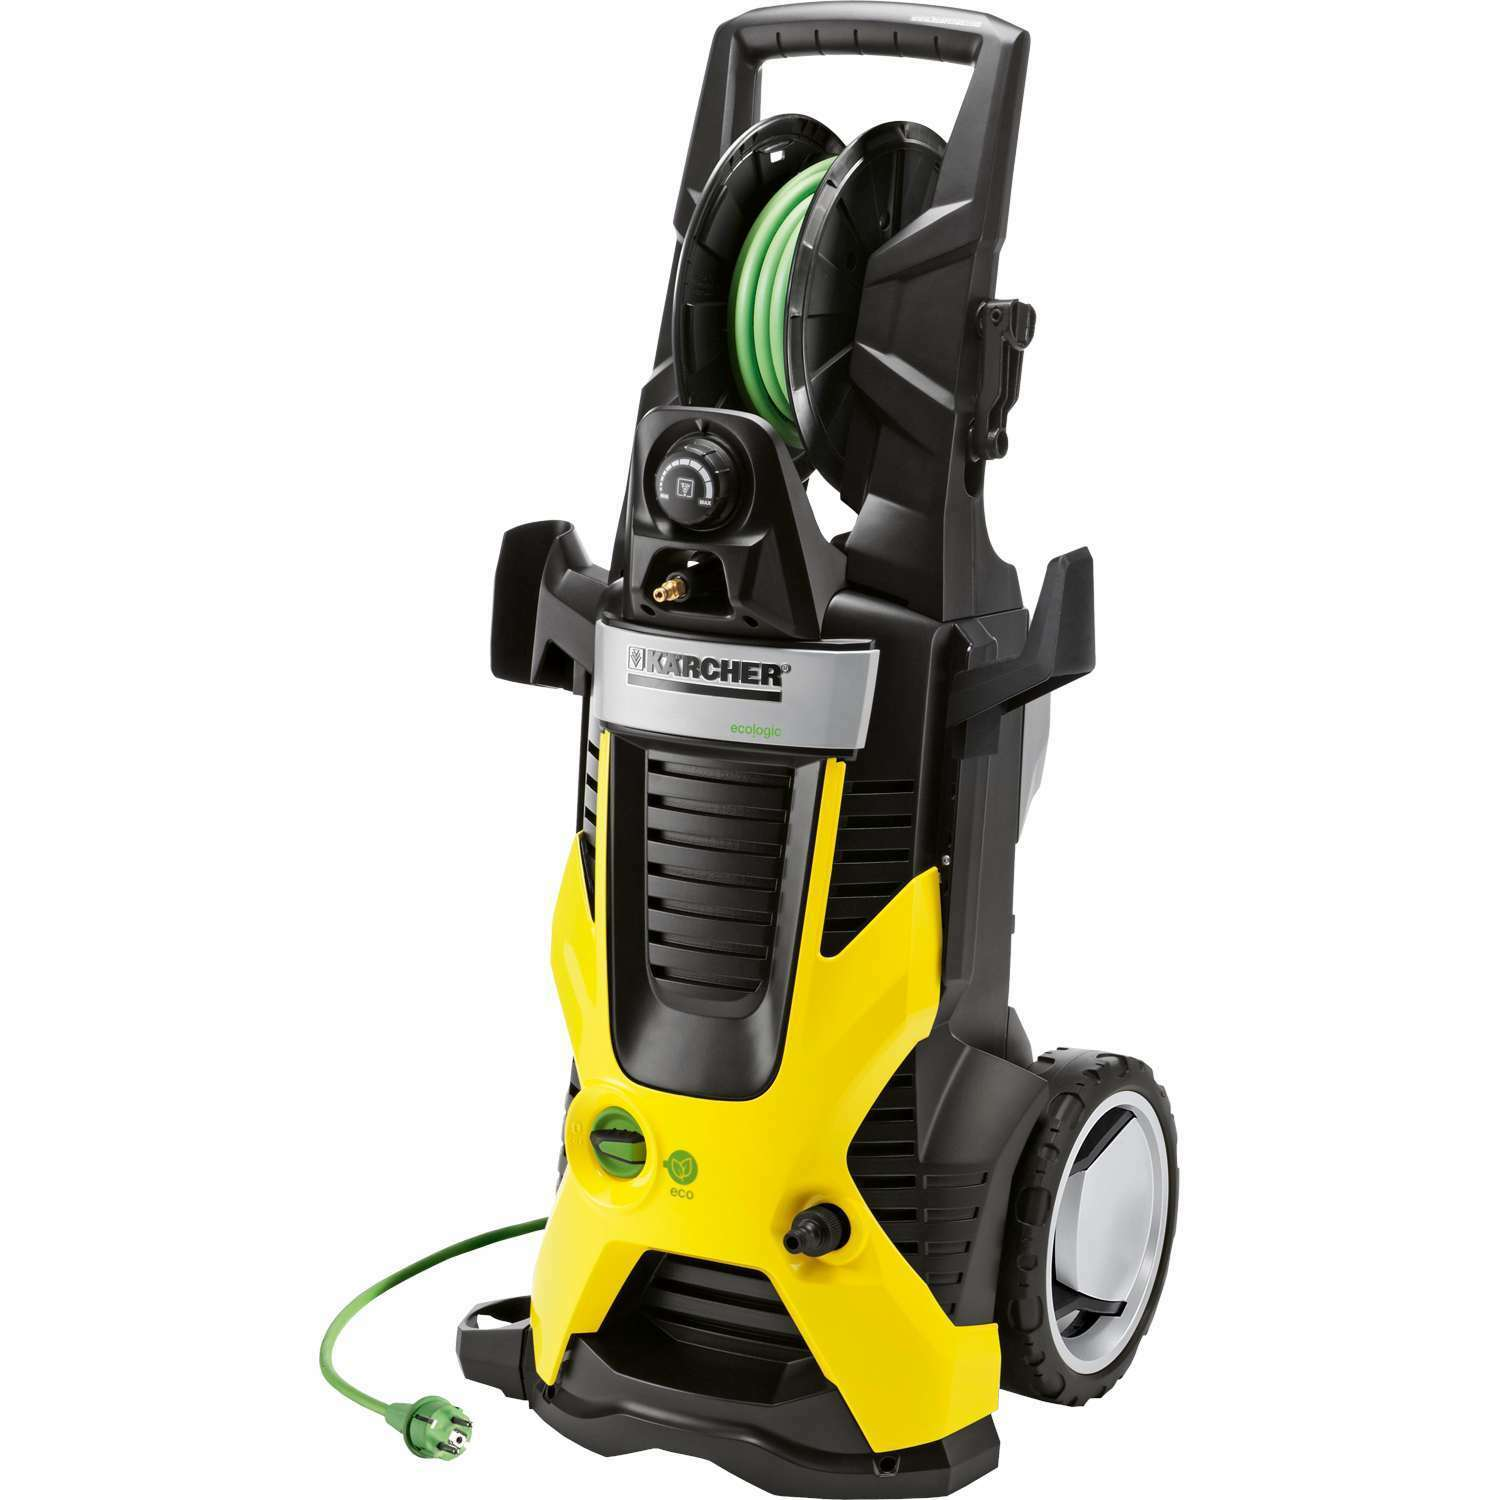 karcher k7 premium home eco water cooled pressure washer 160 bar 2800w 240v picclick uk. Black Bedroom Furniture Sets. Home Design Ideas